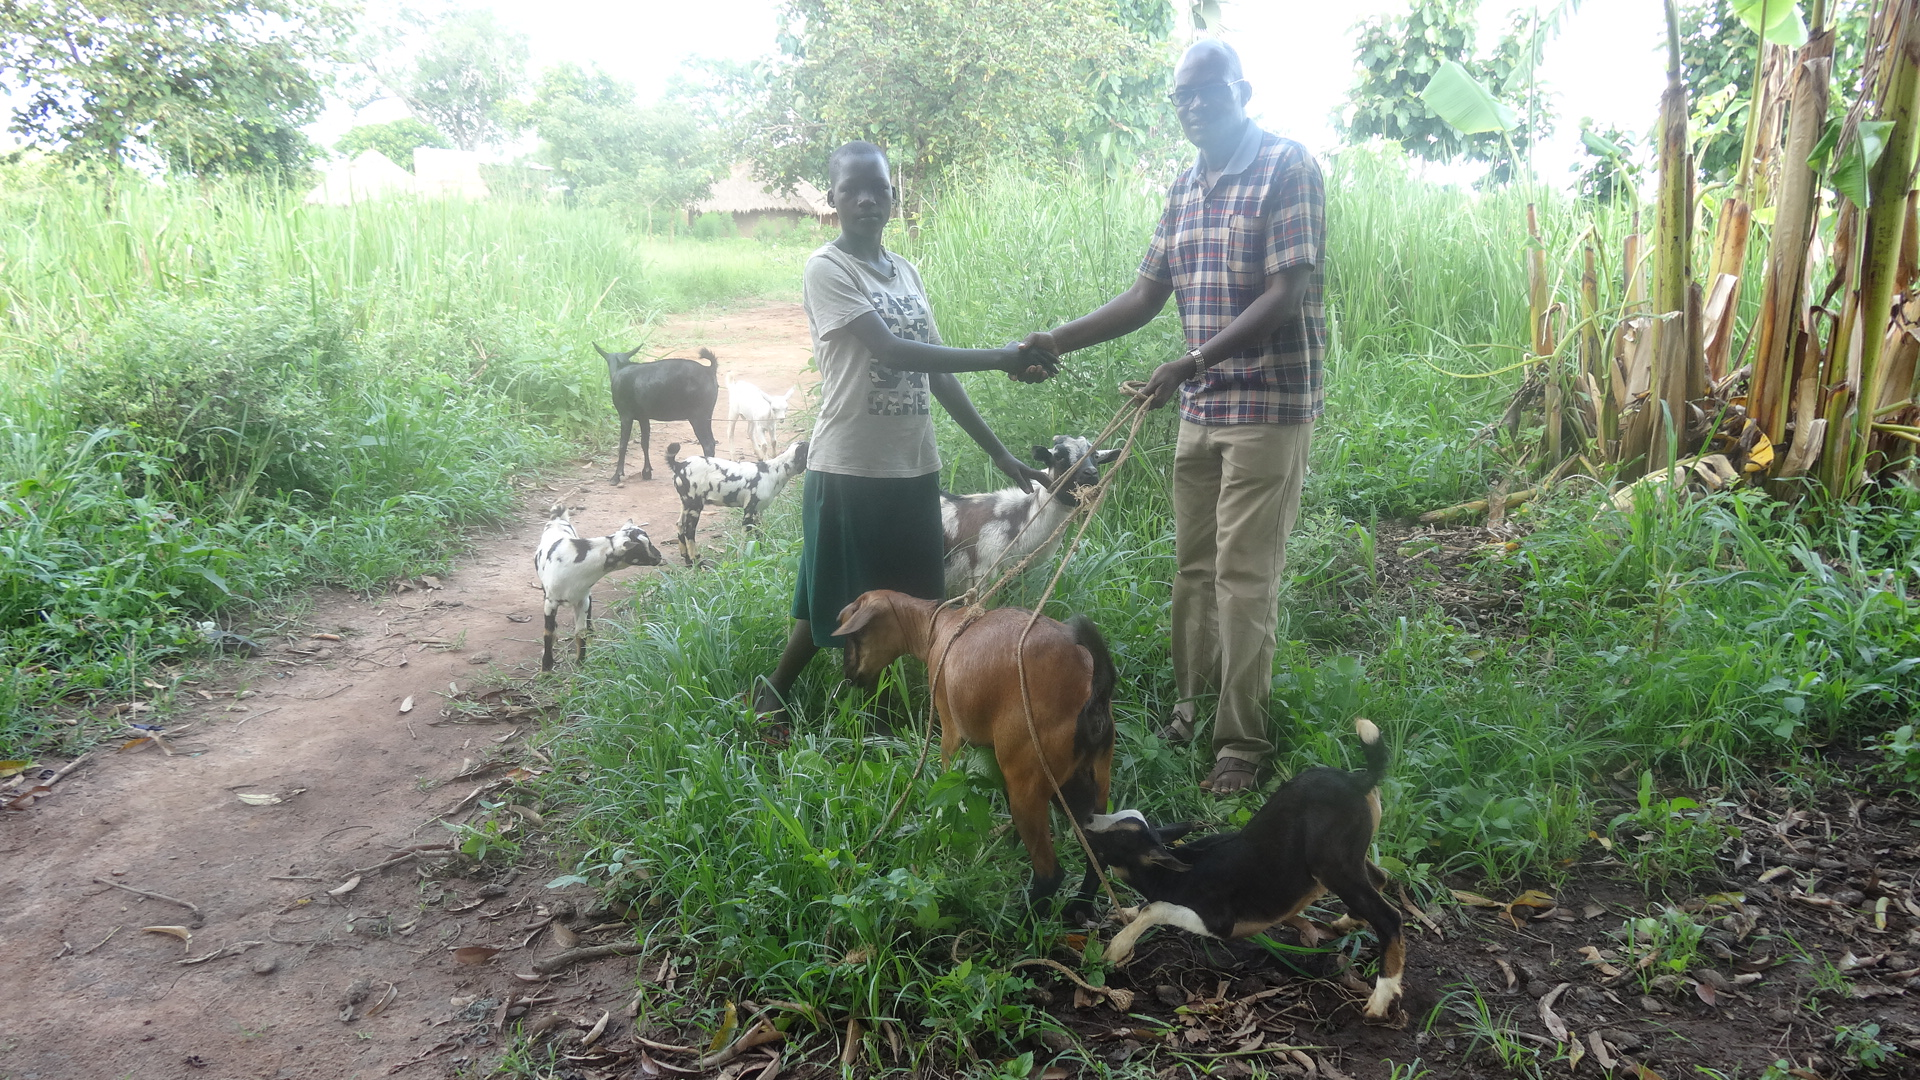 Total orphan now has 6 goats of her own (June 2019) - She is only 15 and a total orphan in Puranga Pader district. She was graduated from the project in June 2019 with 6 goats. Now, she and her 2 siblings have means of paying for school.